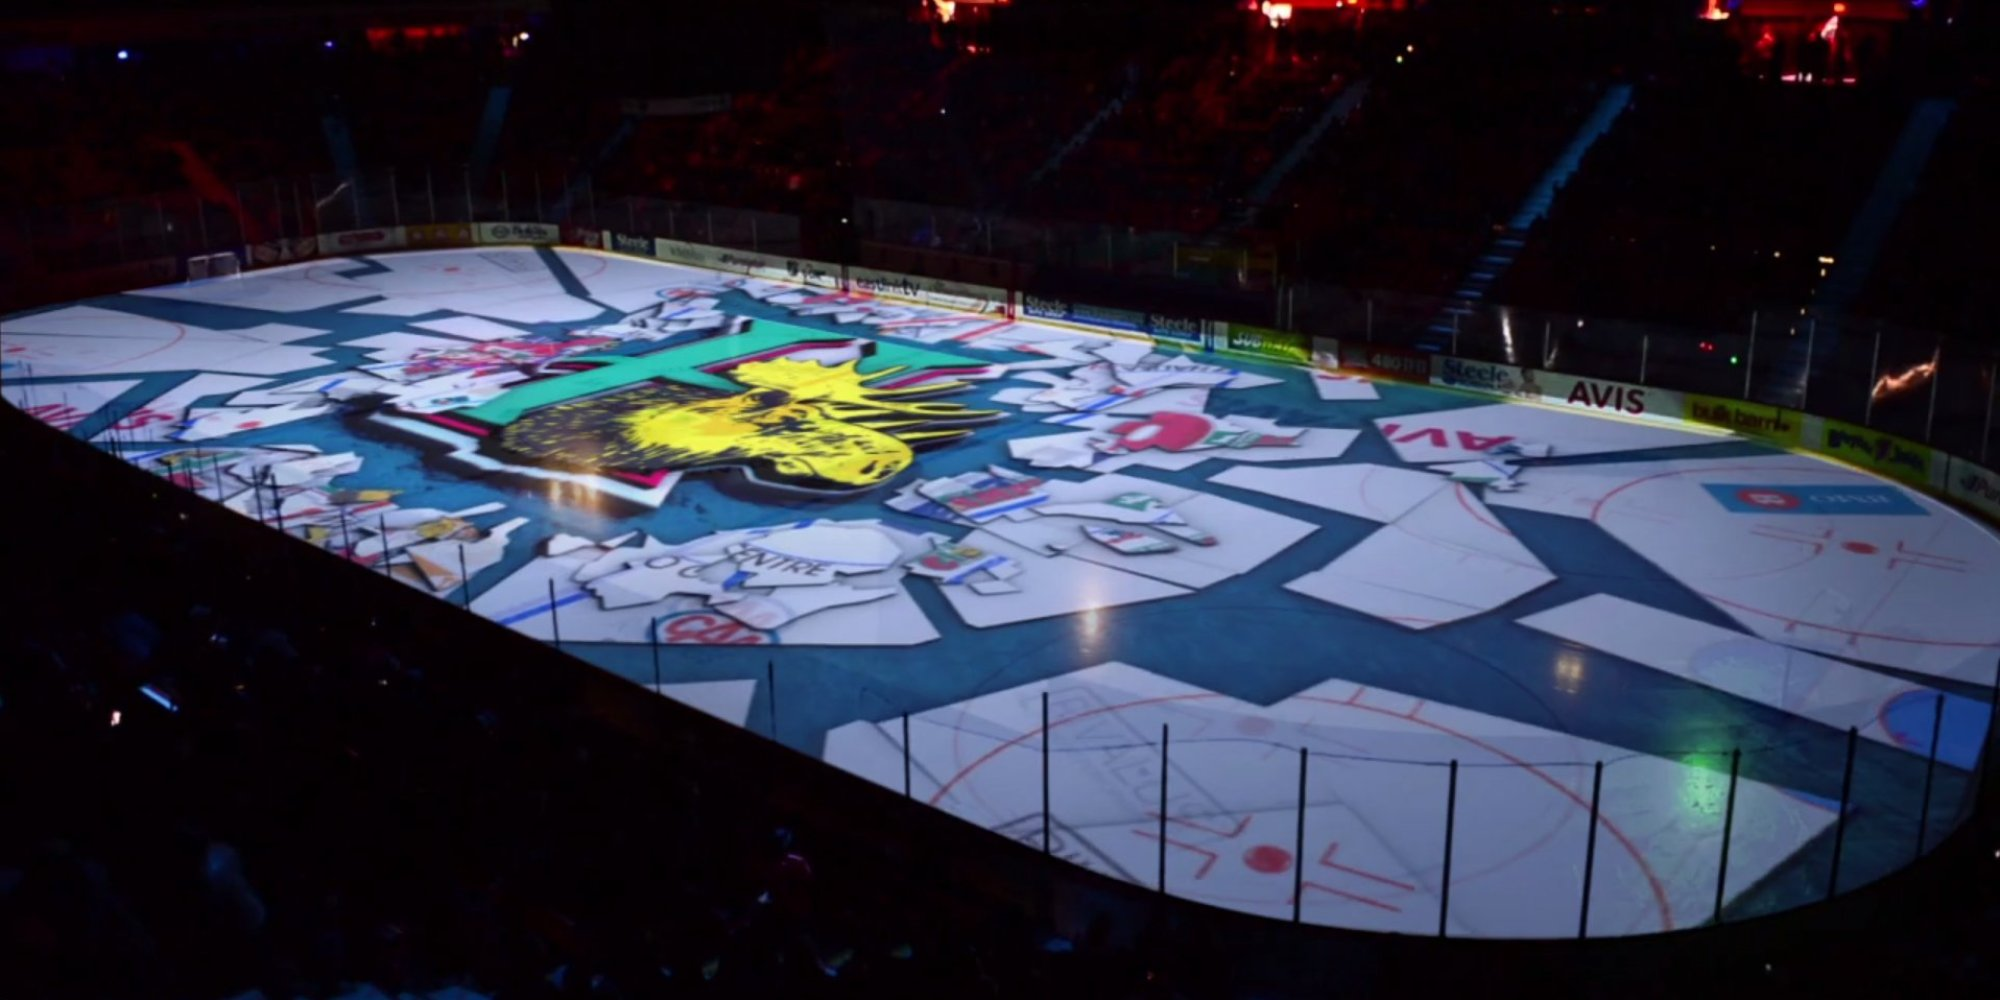 3d Wallpaper Pool Table This Hockey Team S Pregame Show Will Melt Your Brain